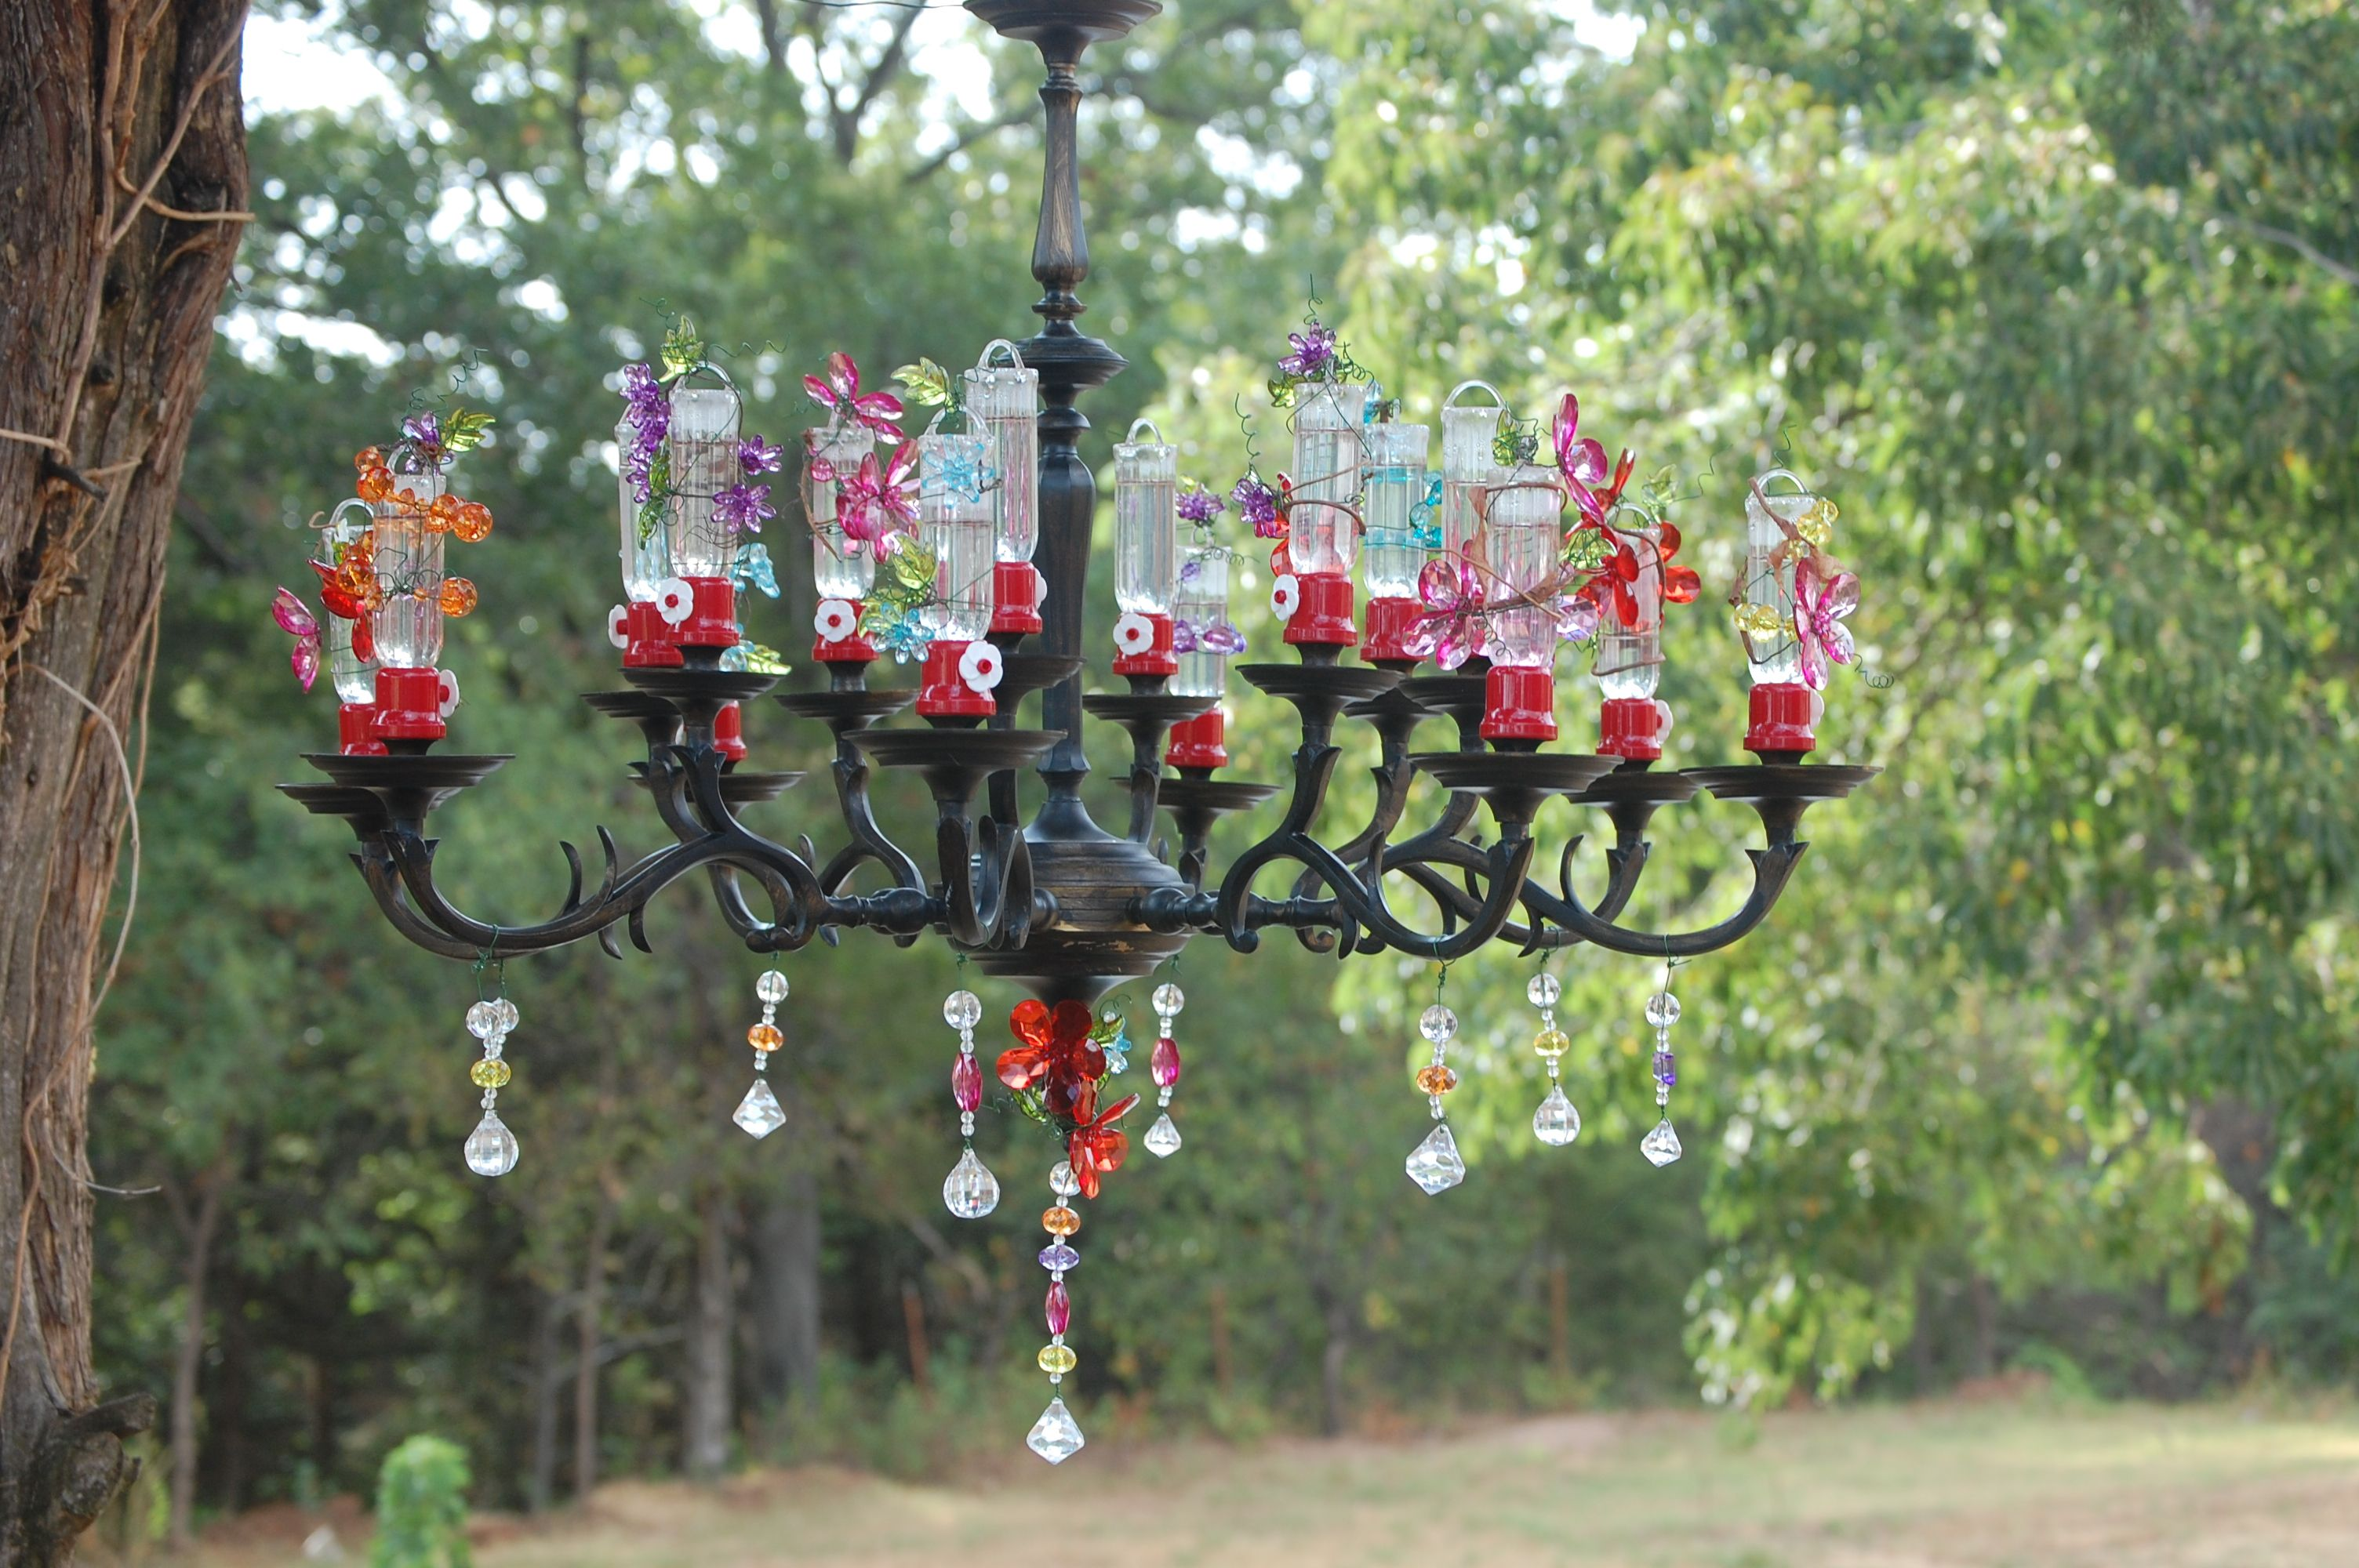 My Hummingbird Feeder Humming Bird Feeders Diy Hummingbird Feeder Diy Bird Feeder